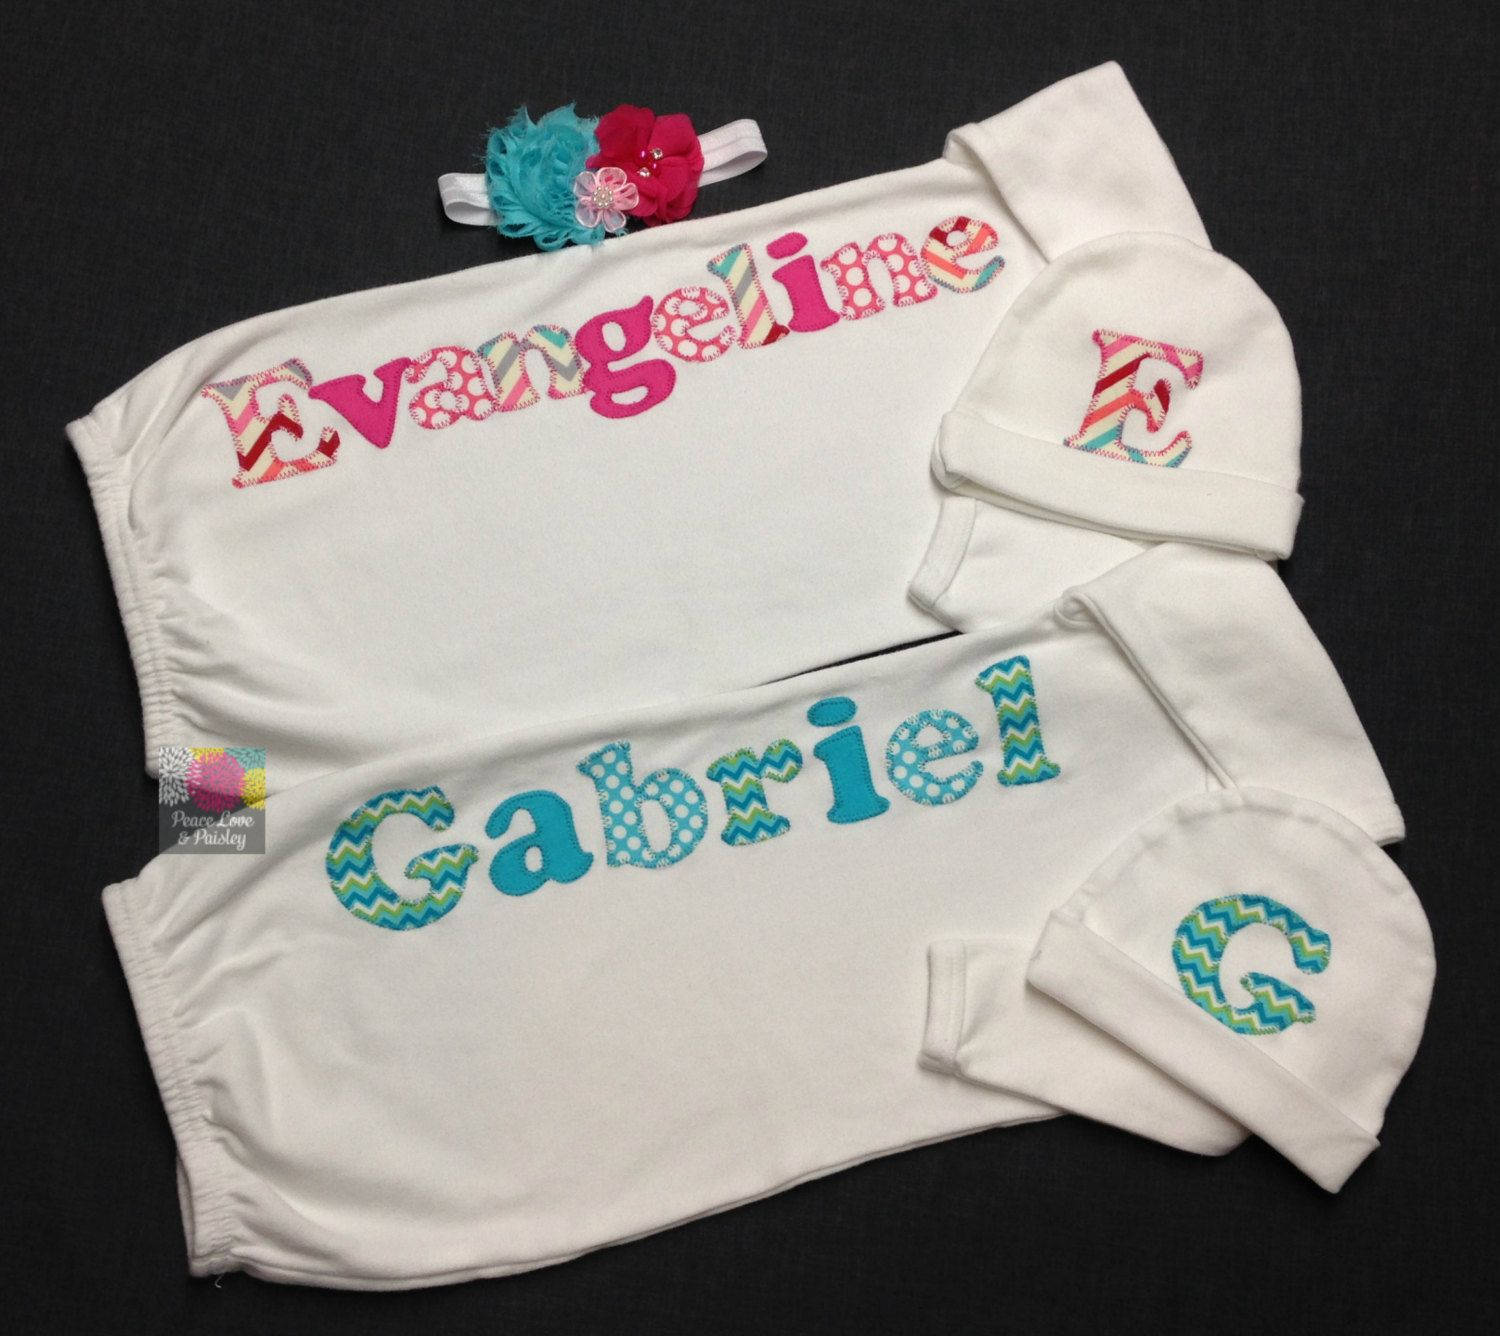 Boy girl twins personalized baby gown and hat sets twin going boy girl twins personalized baby gown and hat sets twin going home outfits negle Choice Image